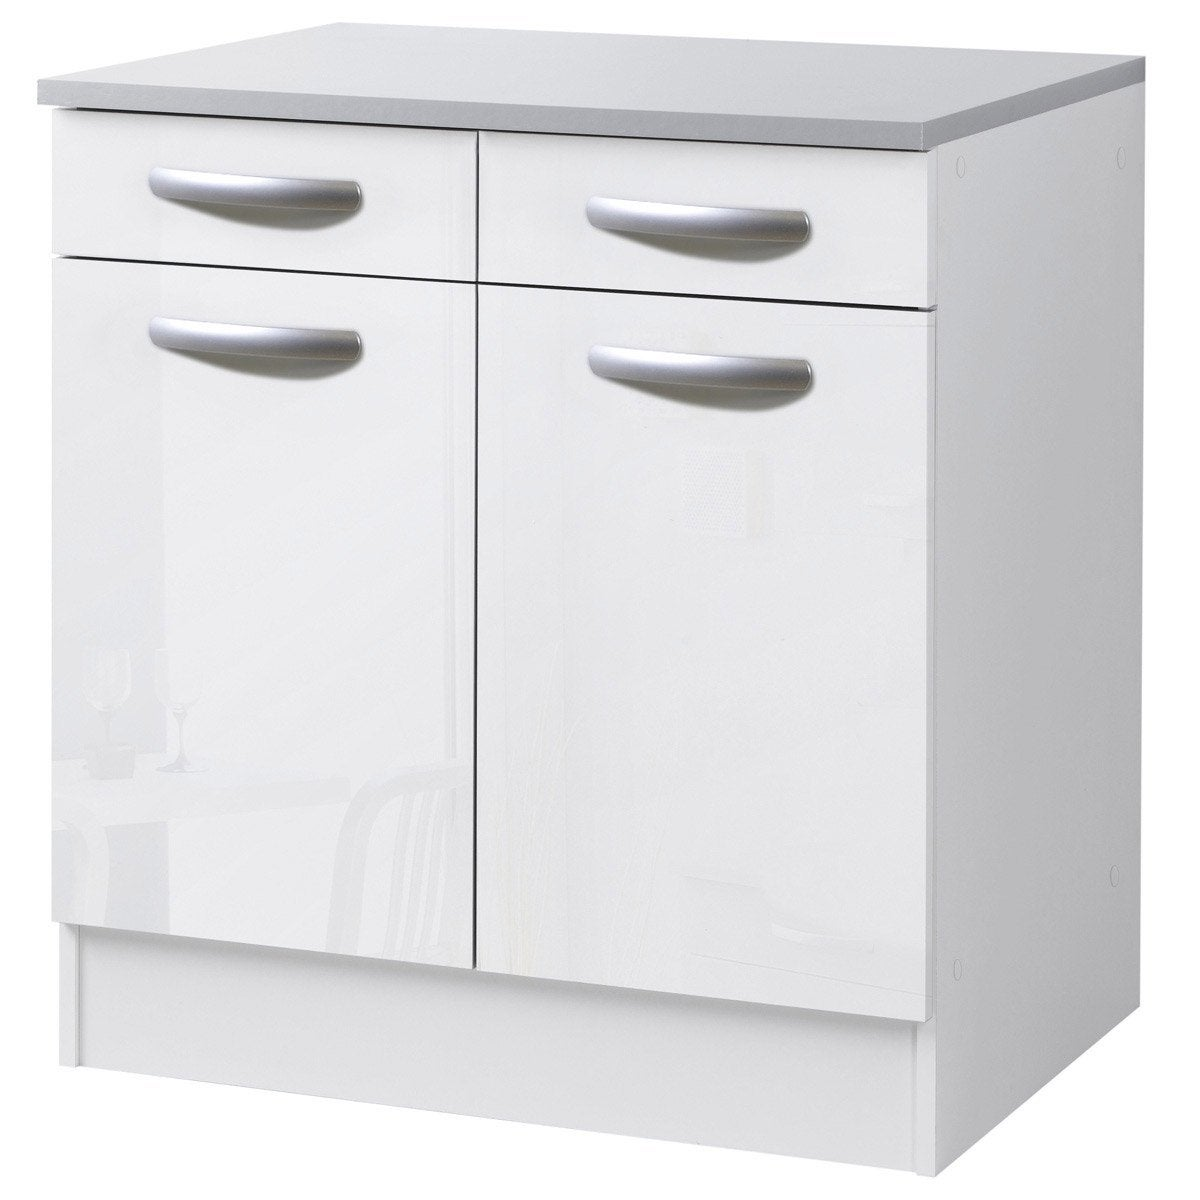 Meuble de cuisine bas 2 portes 2 tiroirs blanc brillant for Portes elements cuisine leroy merlin